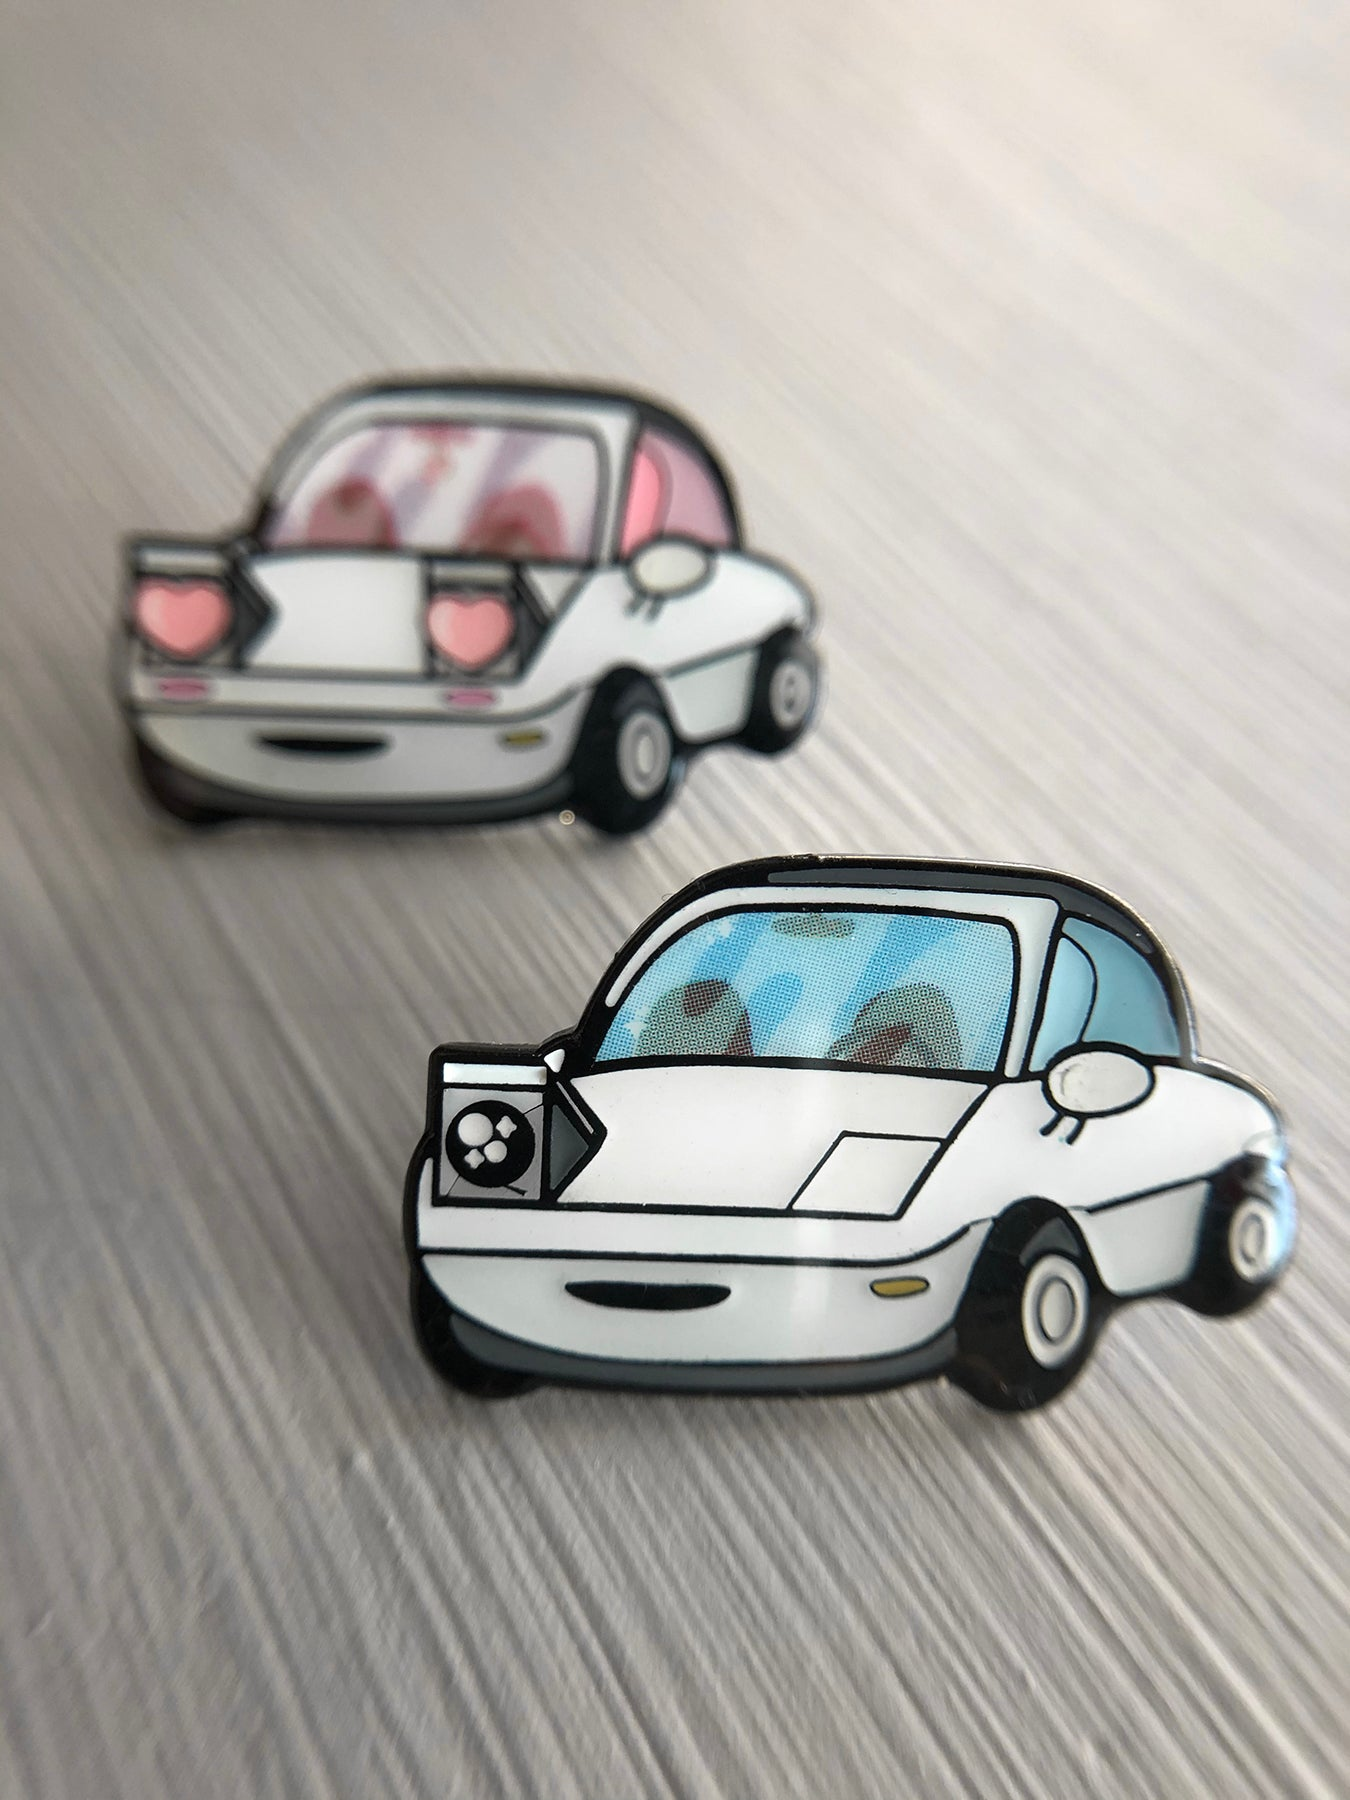 miata popups cute art